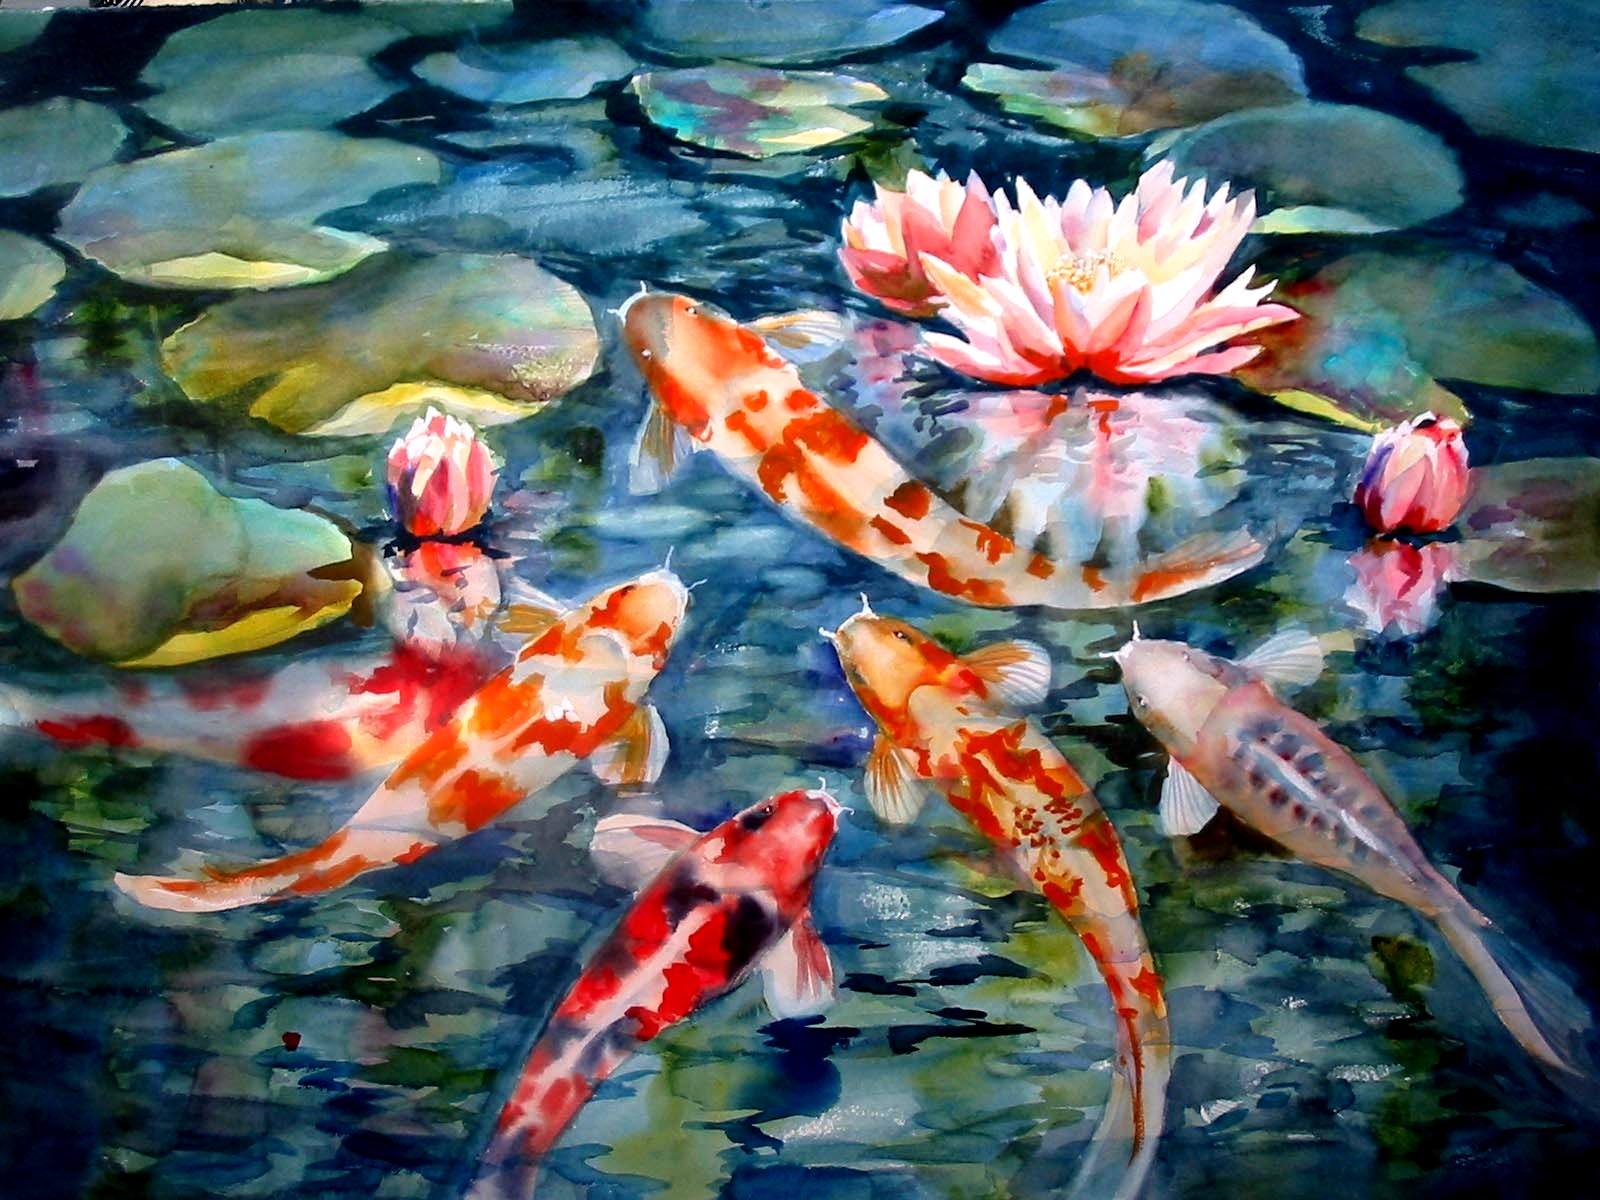 Koi Fish Wallpapers